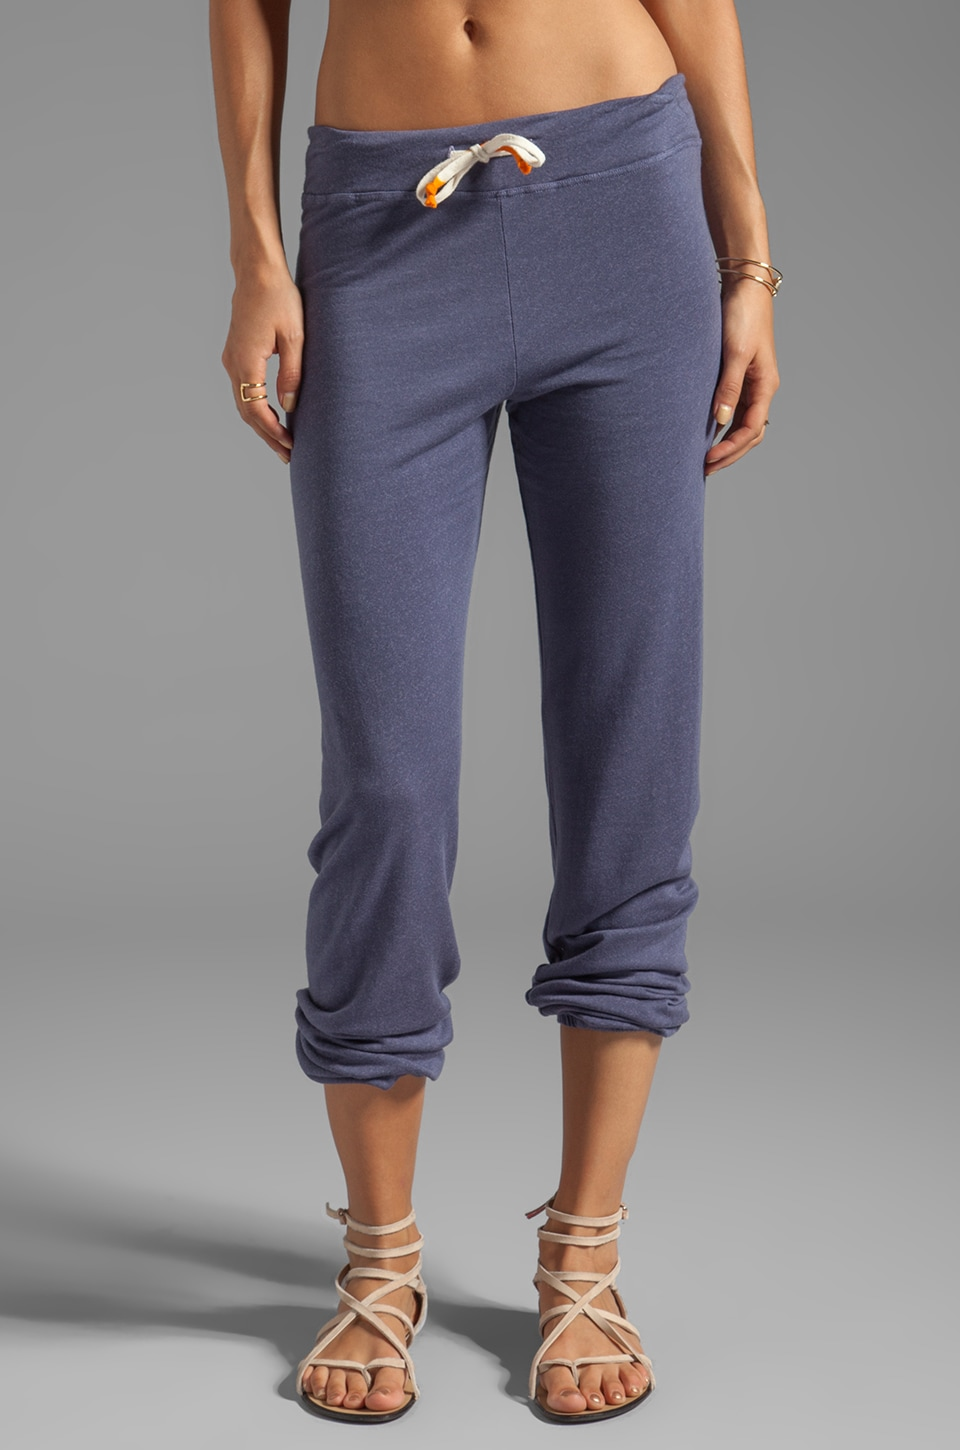 SUNDRY Classic Sweatpants in Indigo